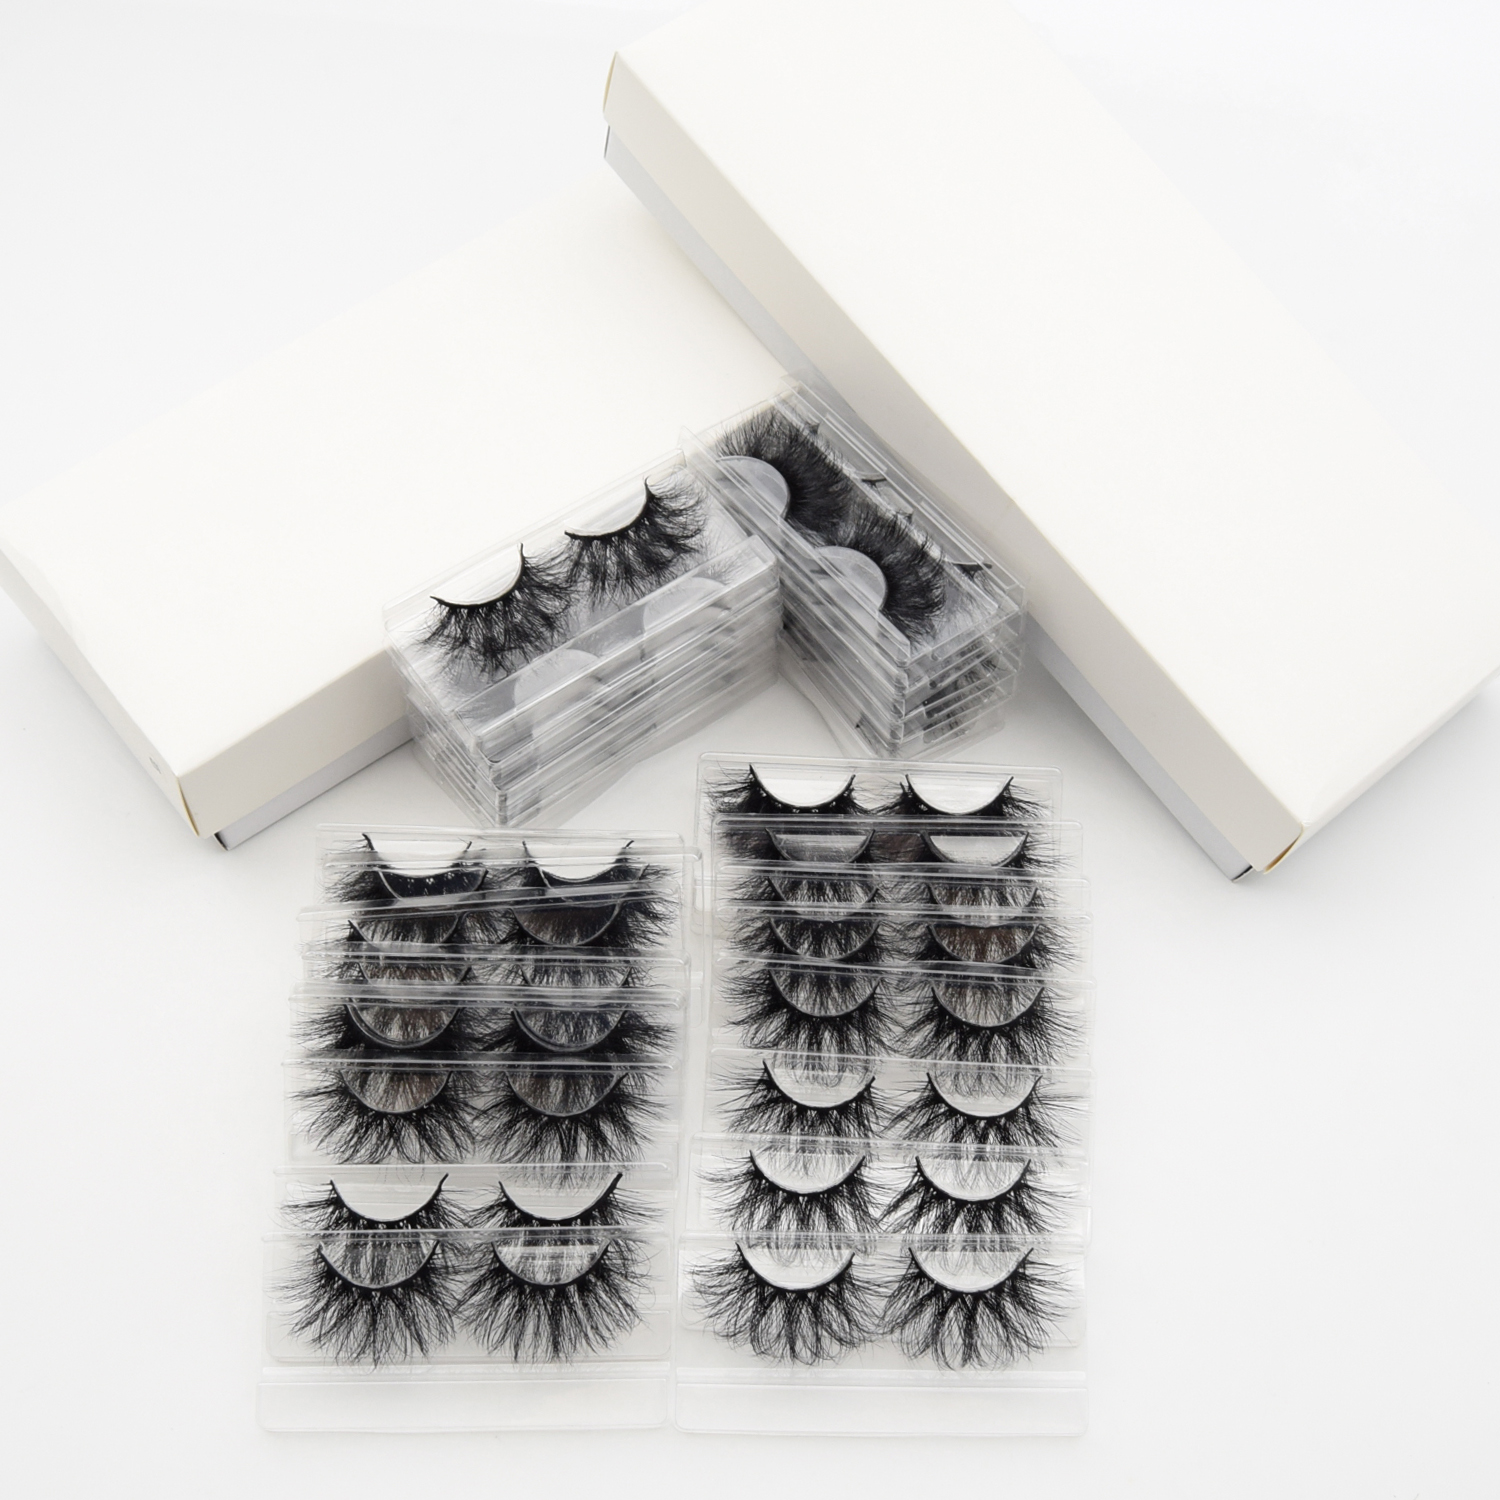 Visofree 30/40 Pairs/lot 3D Mink Lashes With Tray No Box Handmade Full Strip Lashes Mink False Eyelashes Makeup eyelashes cilios